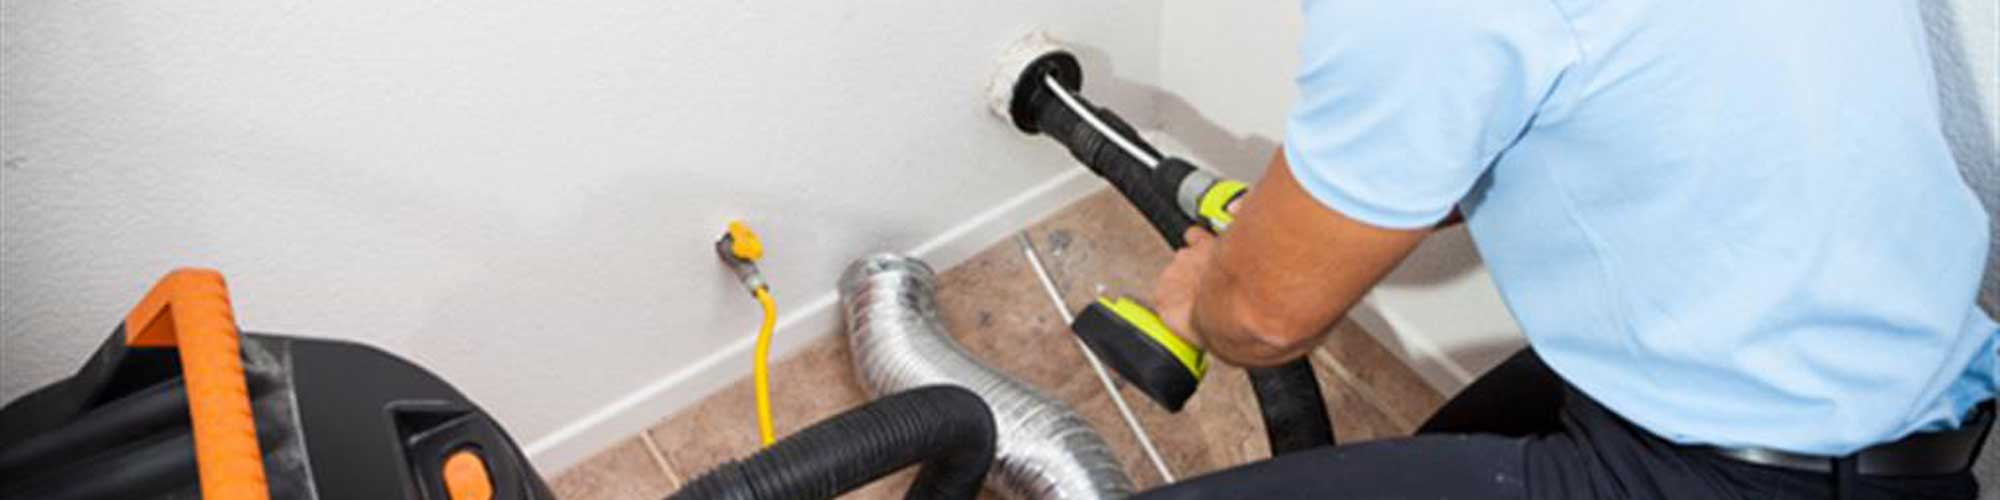 Dryer Vent Cleaning - Generations Carpet Cleaning